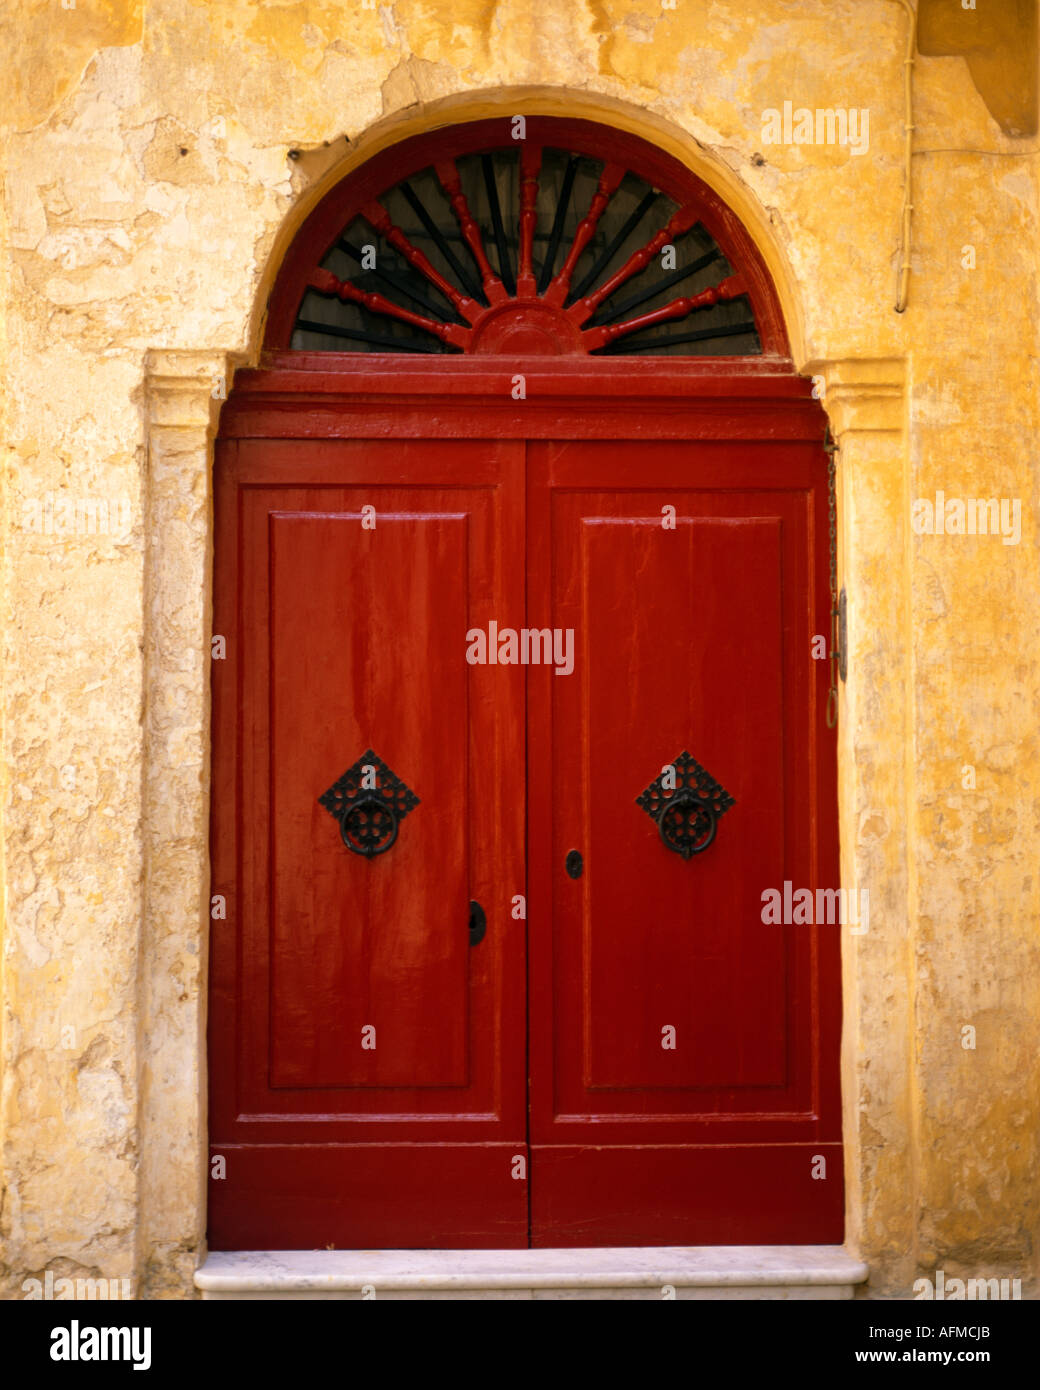 MT - MDINA: Red Door in the historic Old Town - Stock Image